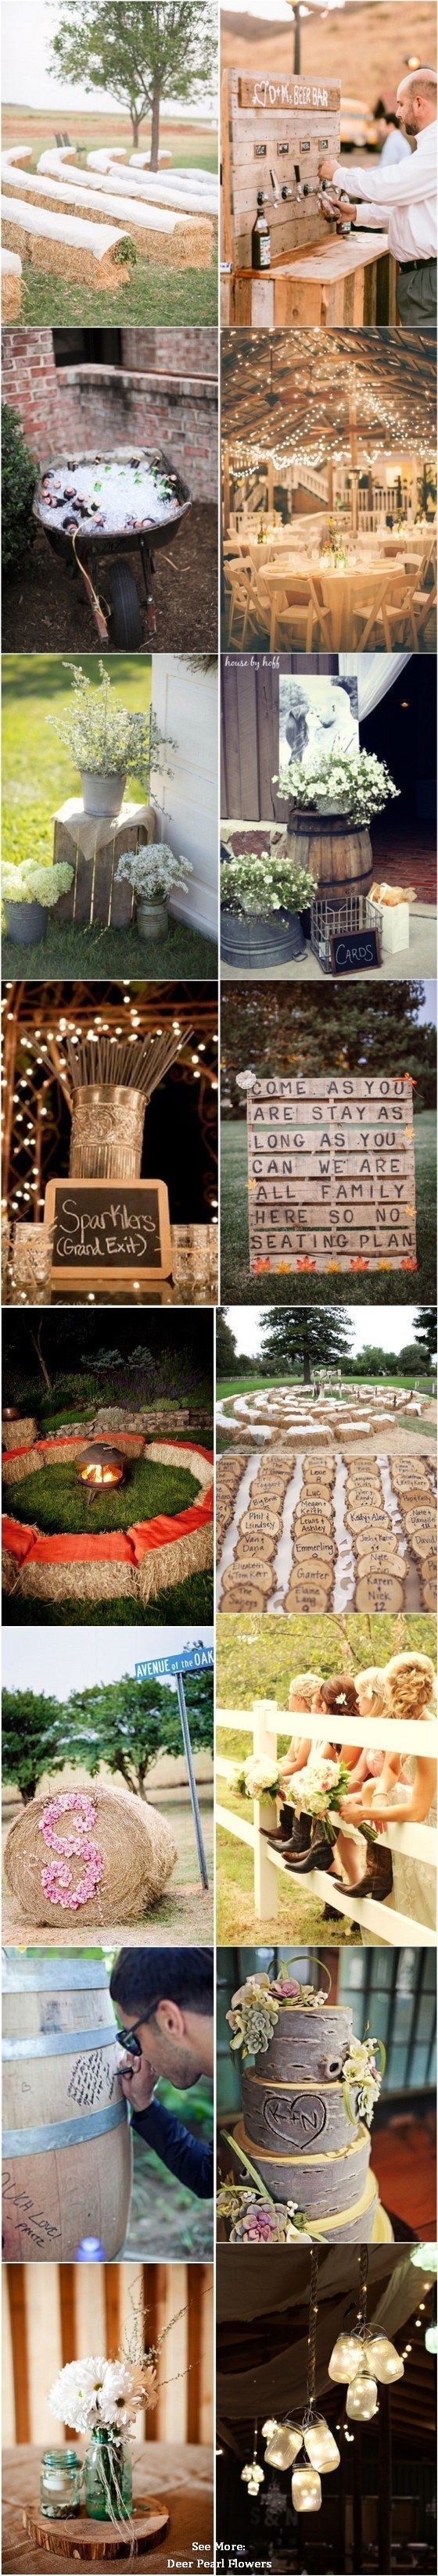 Hay Bale Benches + Beer Tap + Wagon Cooler + Lavender Decor + Sparkler Exit = Perfect Rustic Insop